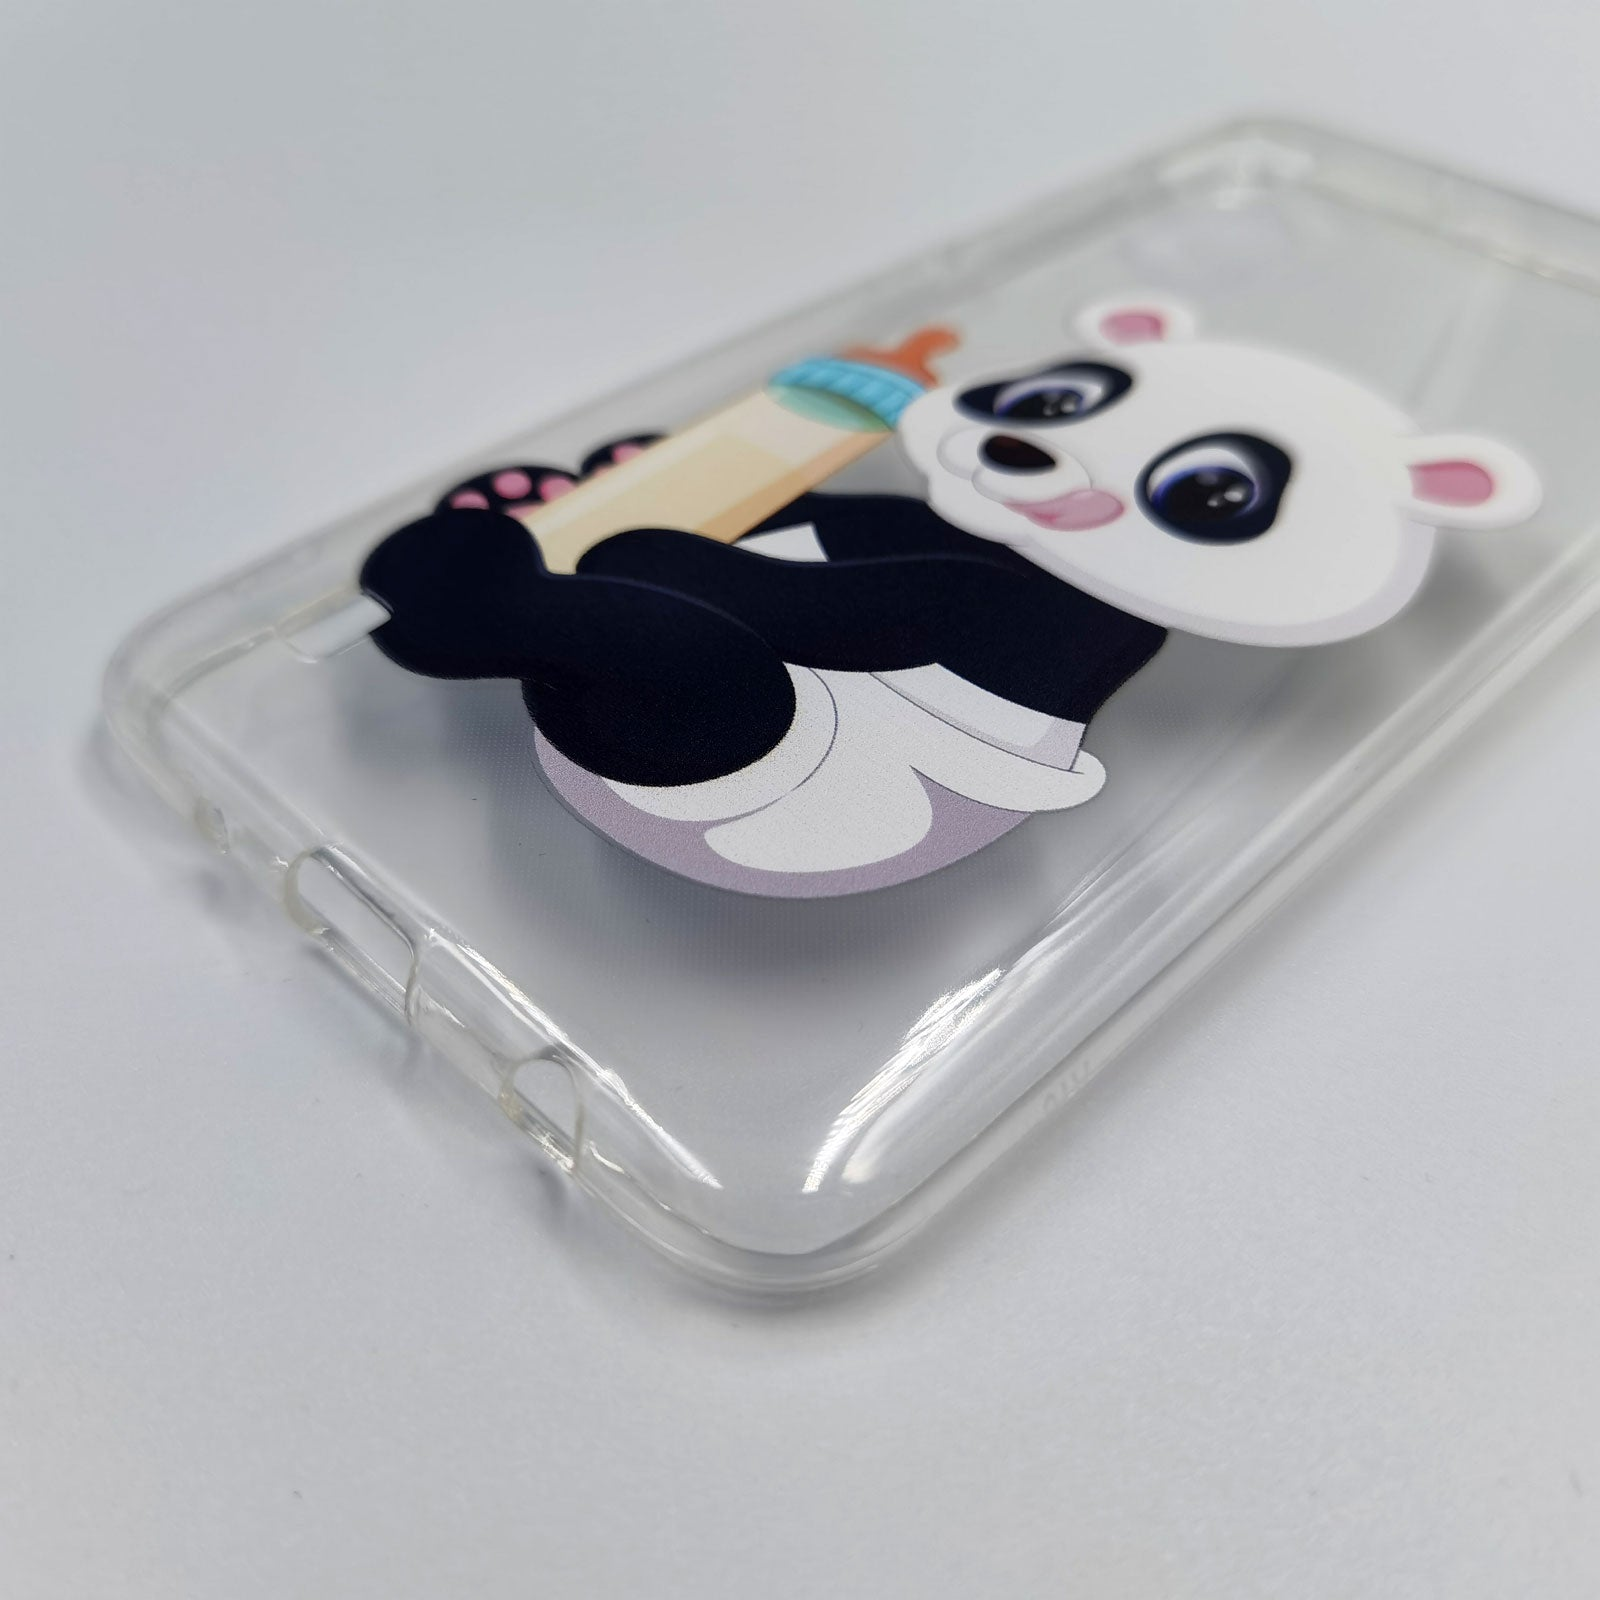 Husa Samsung galaxy A10 model Baby Panda, Silicon, TPU, Viceversa Multicolor